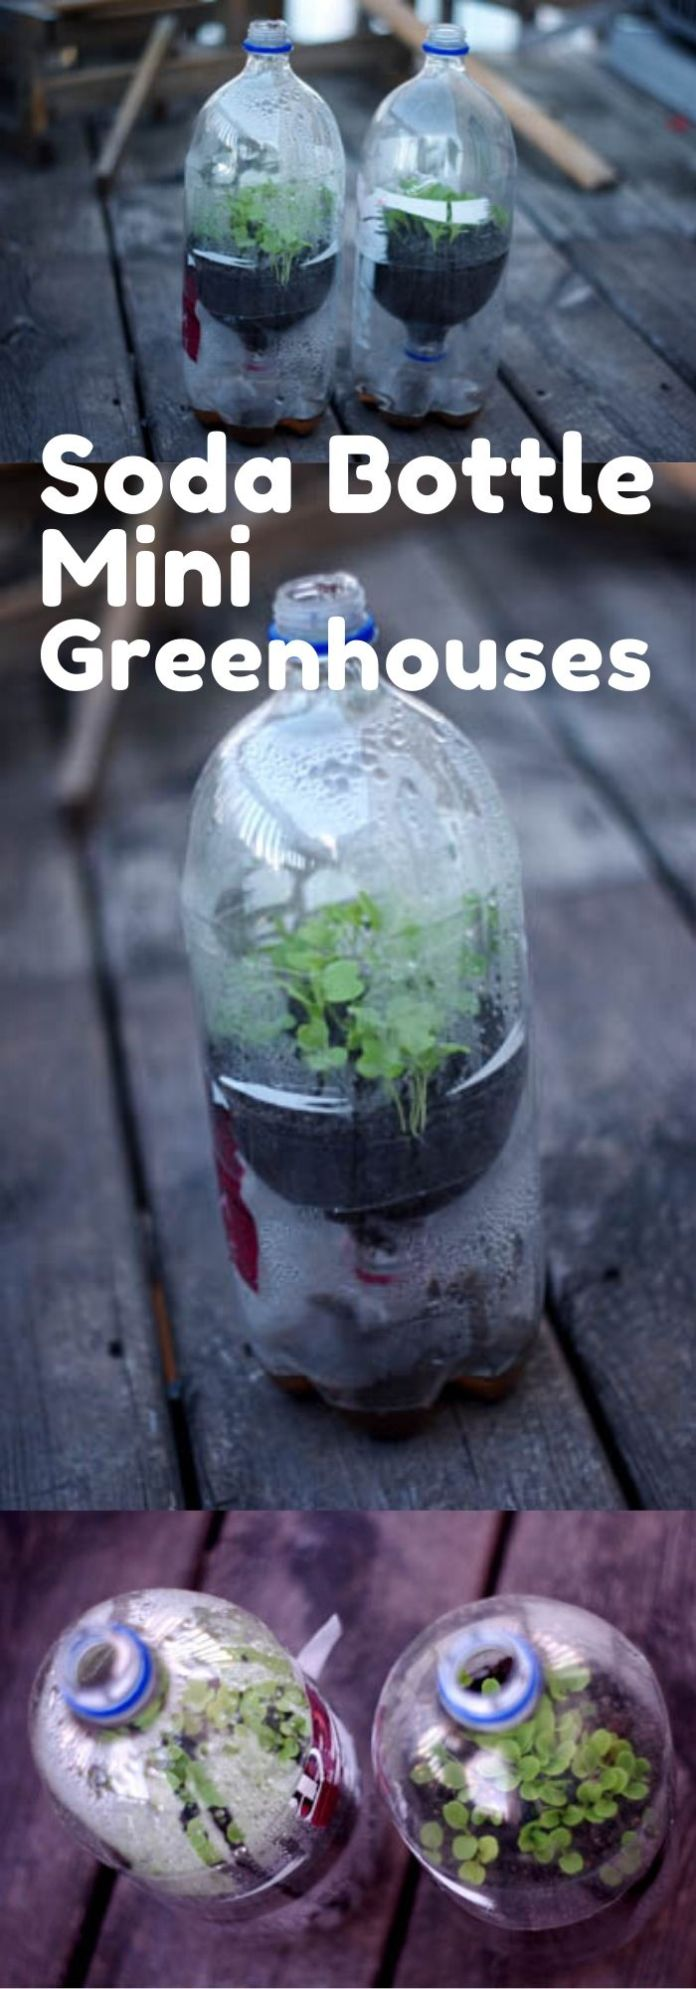 Soda Bottle Mini Greenhouses | Gardening Hacks and Trips